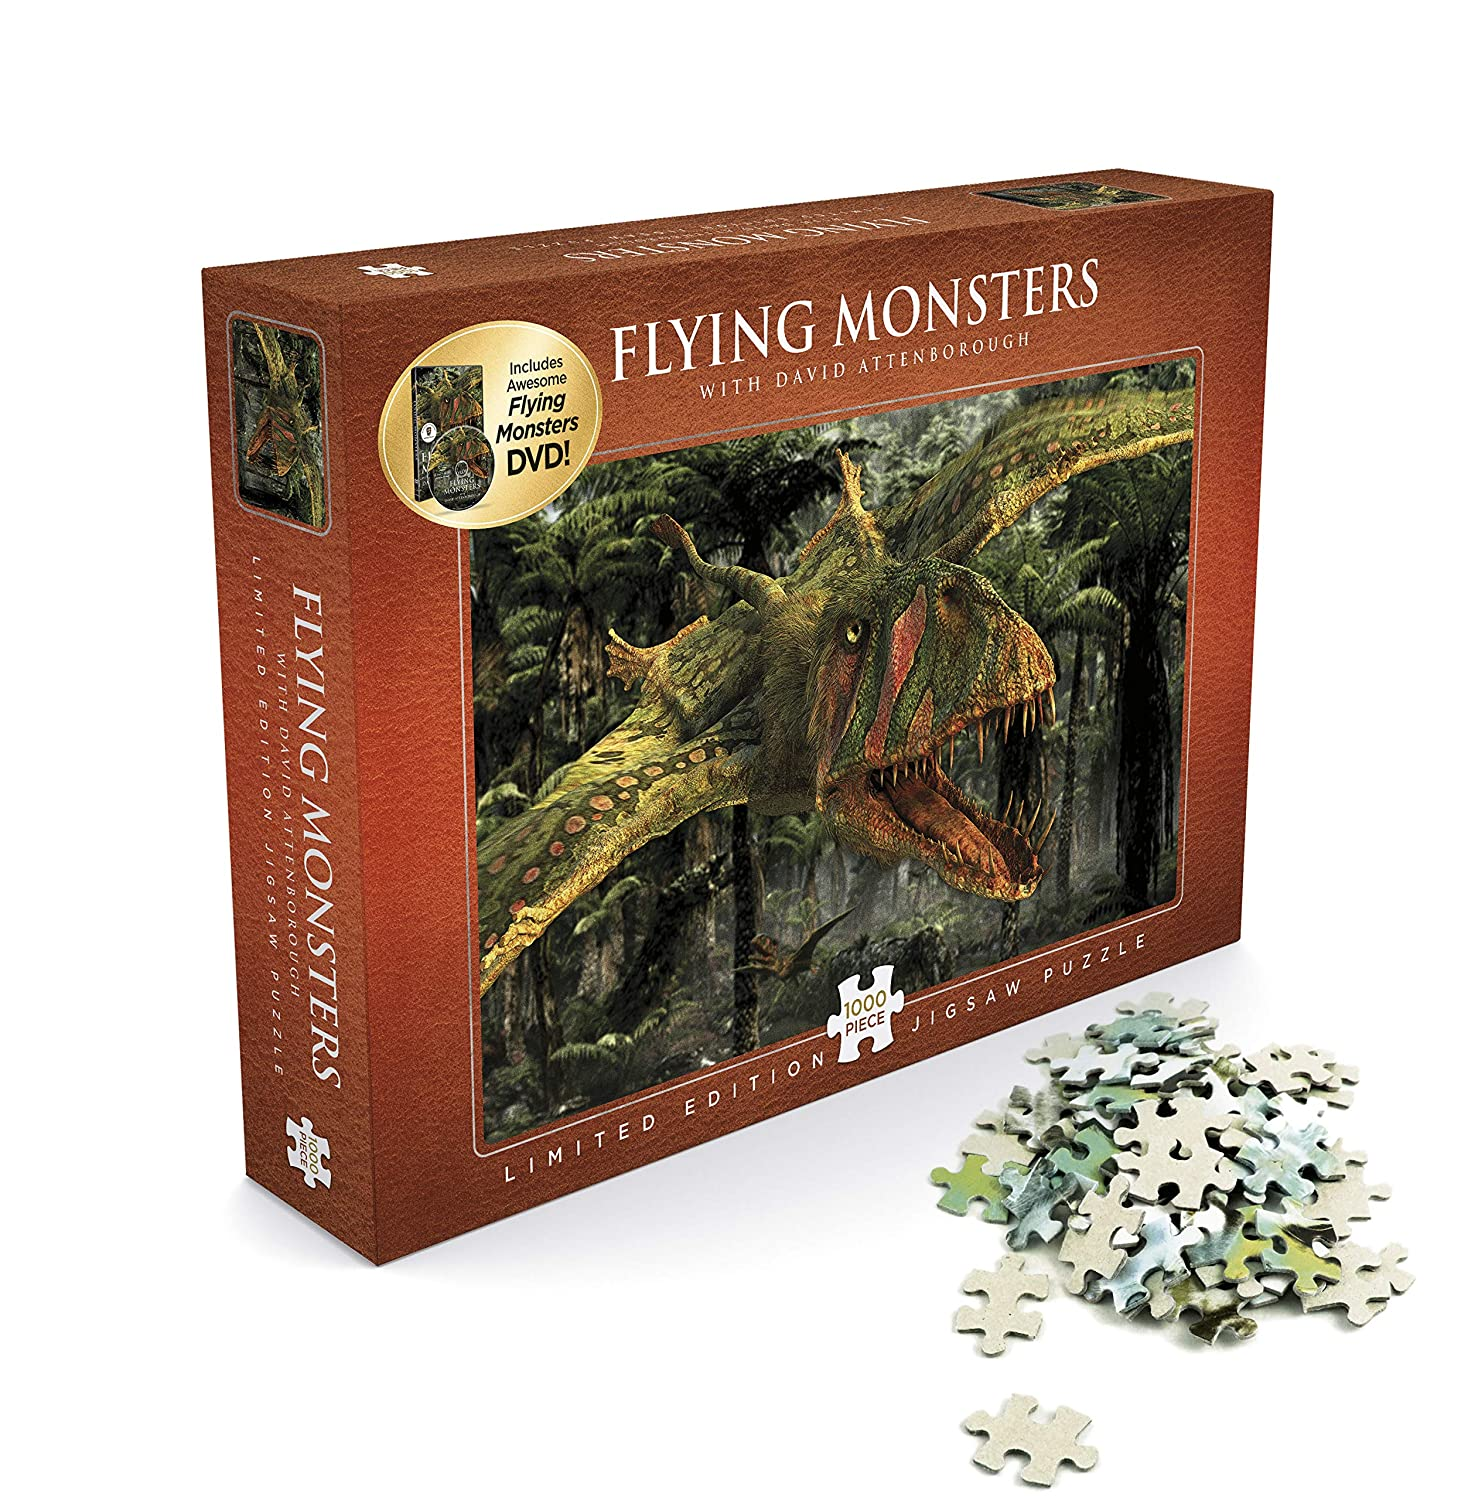 David Attenborough - Flying Monsters - Puzzle 1000 + DVD